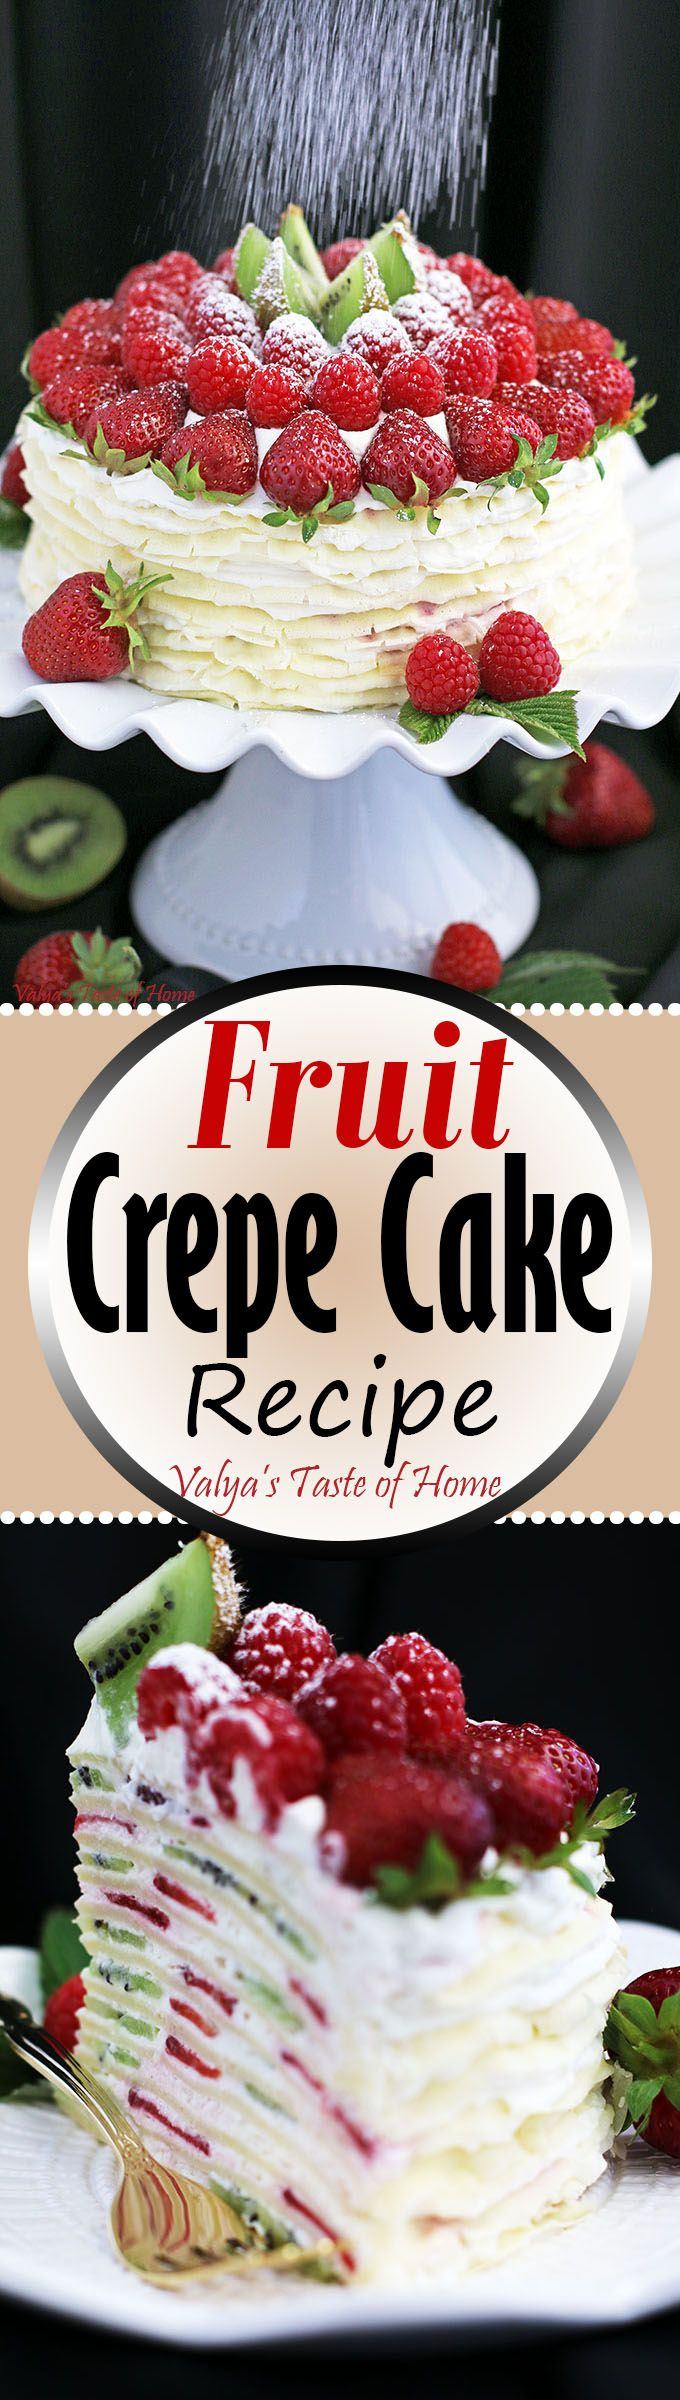 If Crepes with Cheese wasn't enough, here another fantastic dessert with crepes that is an absolute must-try. The experience of this Fruit Crepe Cake Recipe is almost tough to get across. The words delicate and delicious barely begin to describe this beautiful and elegant crepe cake. Its texture and flavors are incredibly light and gentle in taste. Loaded with fruit and cream, that perfectly go together, every bite just melts in your mouth and is thoroughly enjoyed.